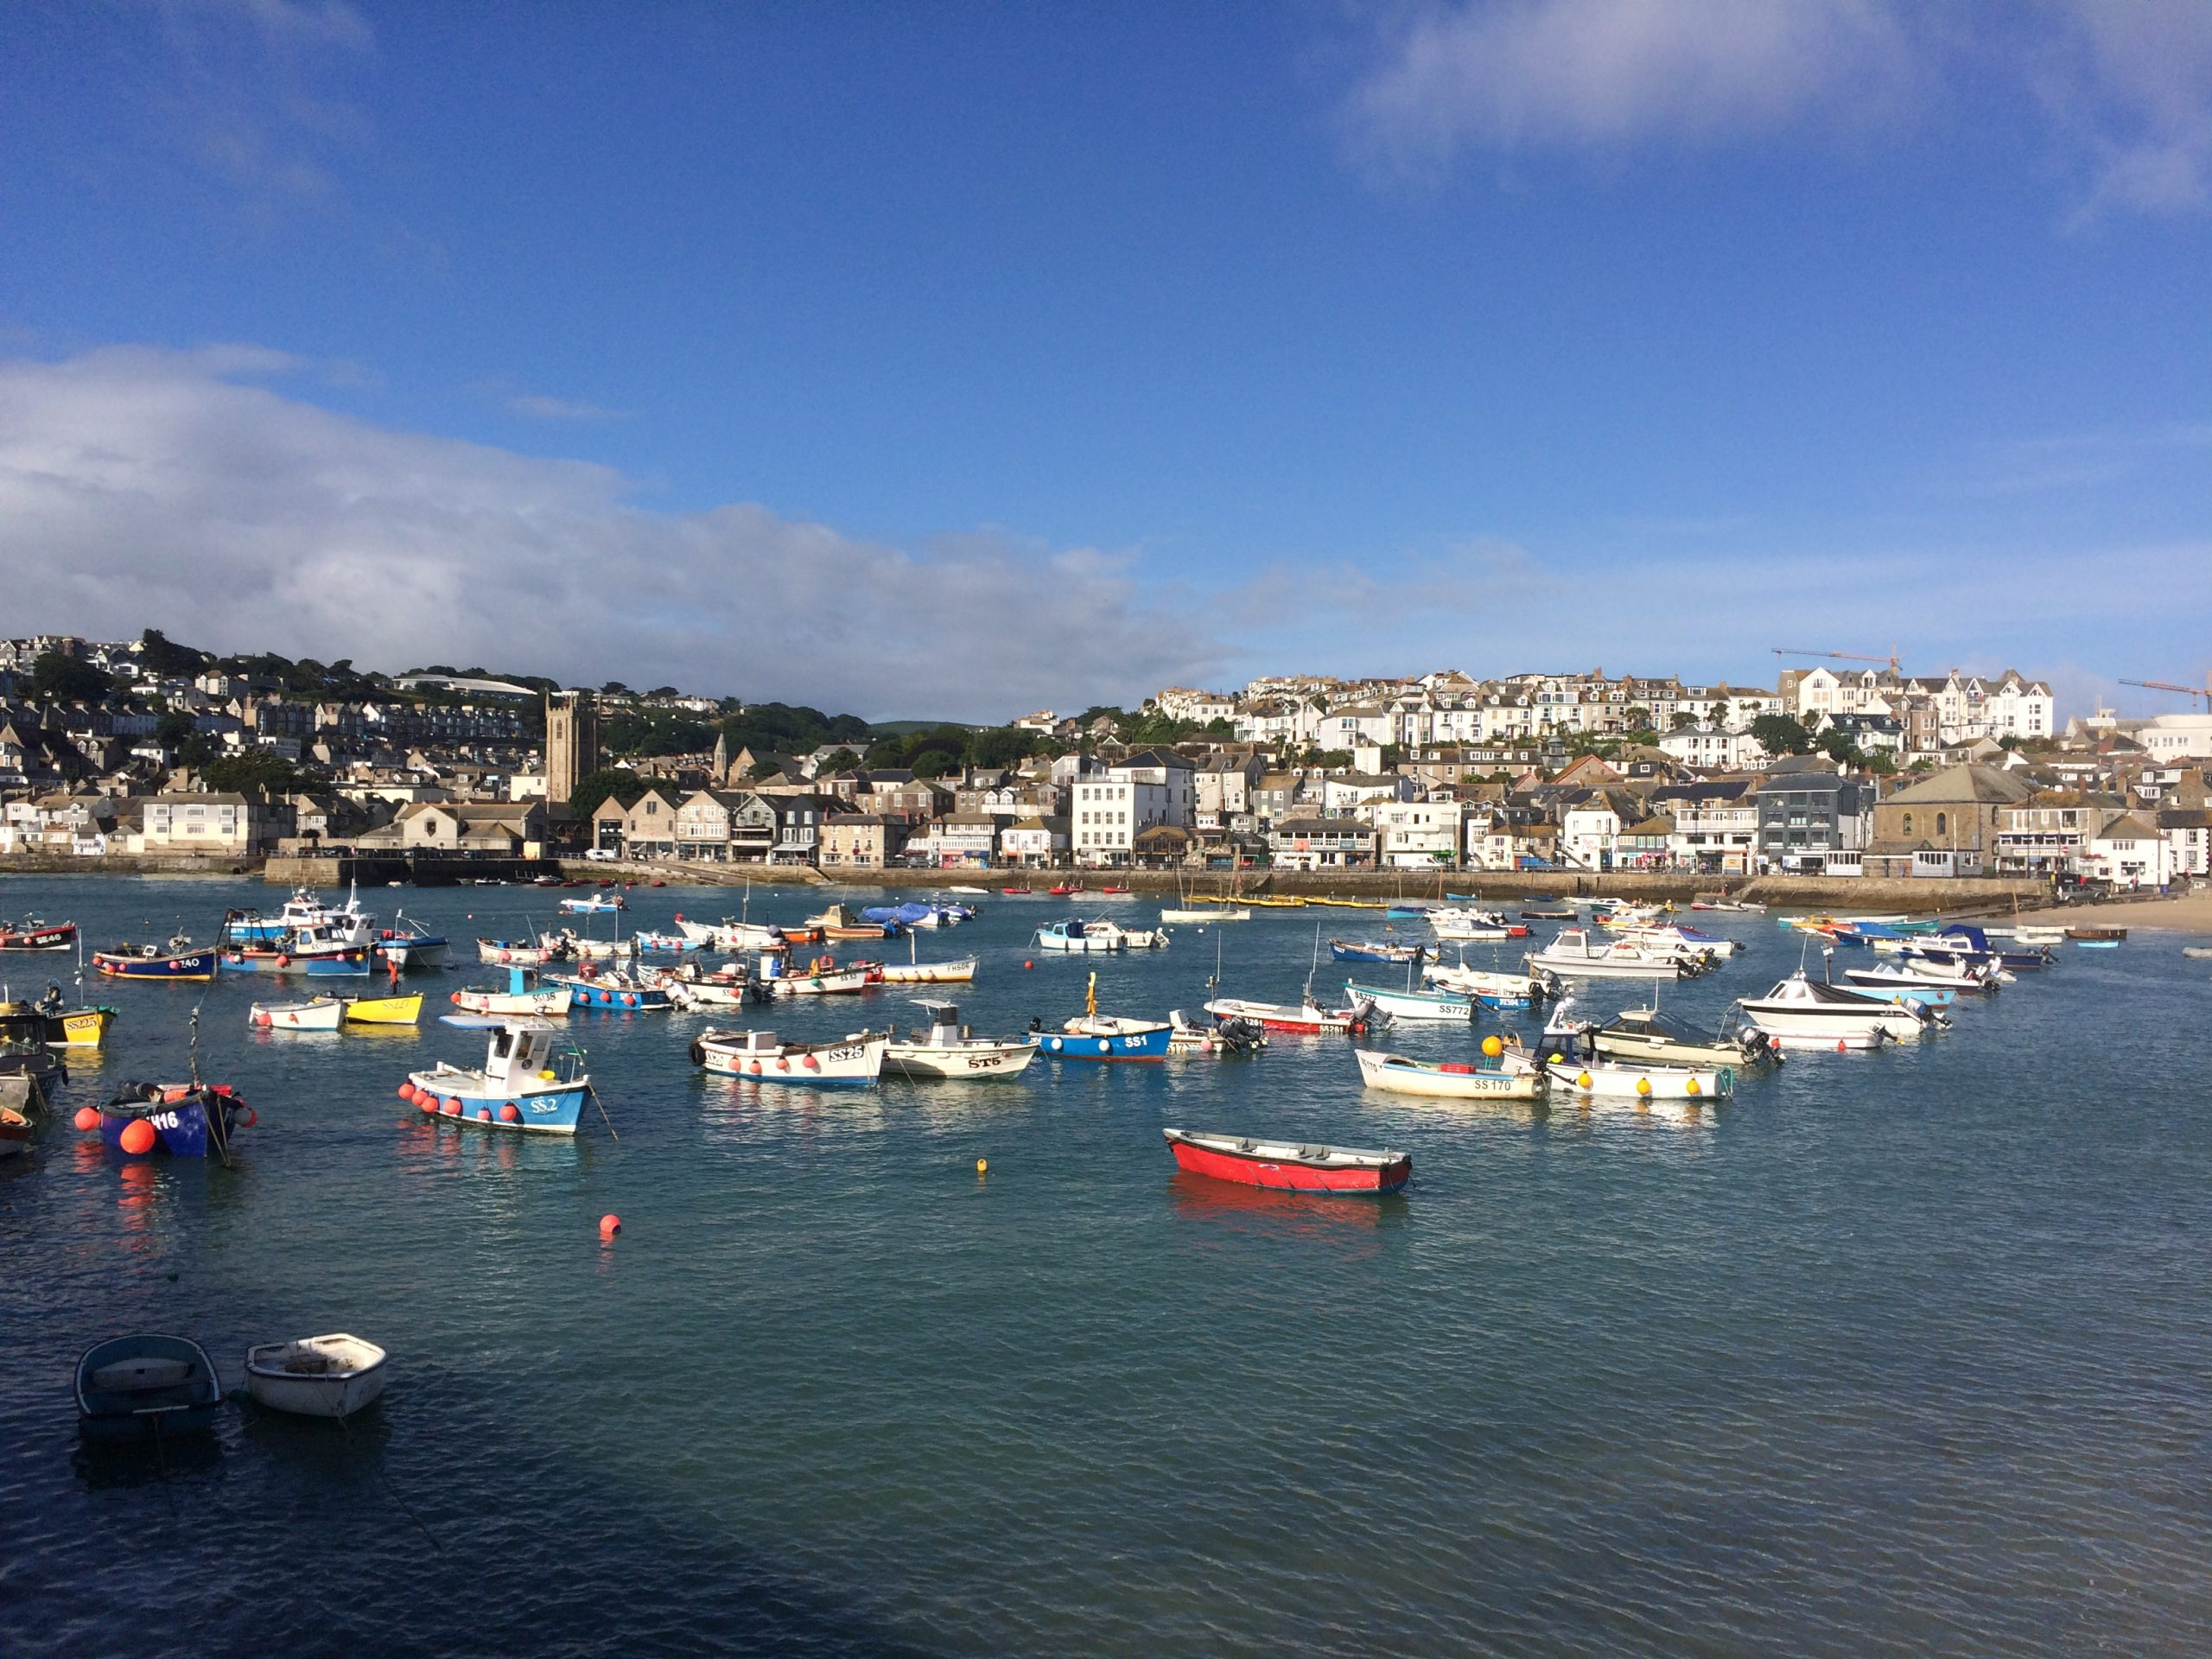 St Ives Harbour looking towards Trenwith.